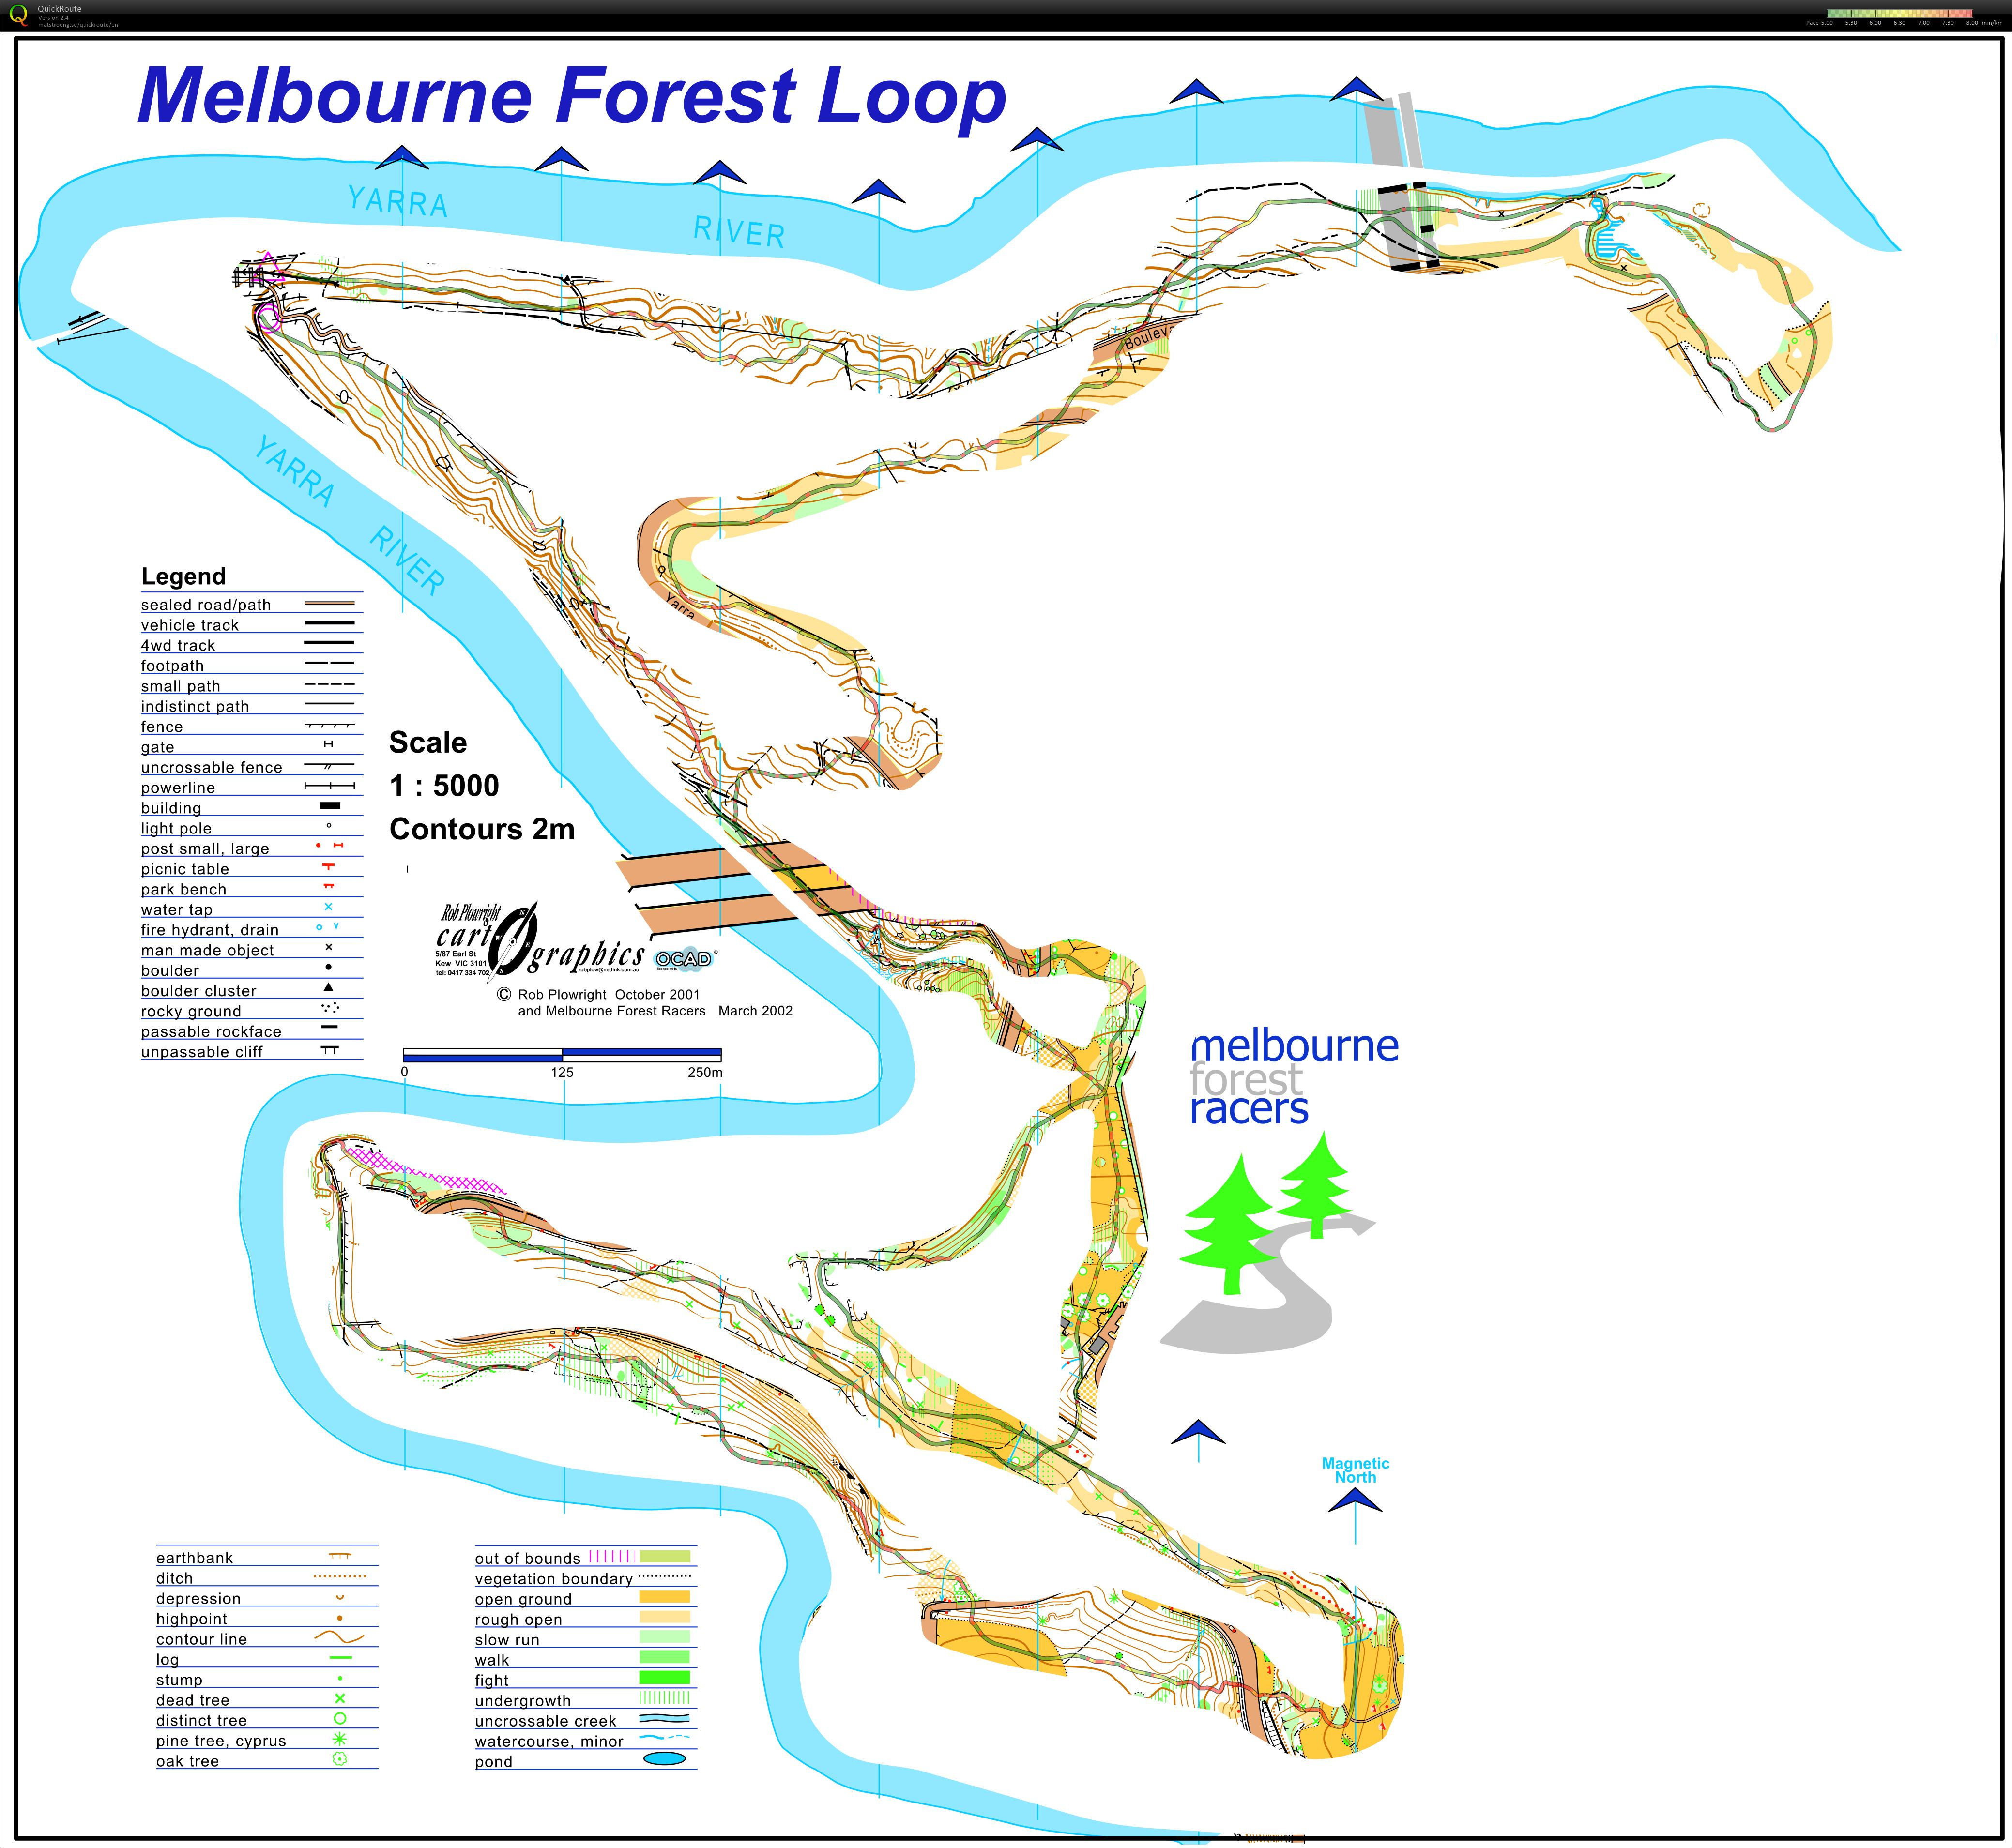 Melbourne Forest Loop (01/08/2020)